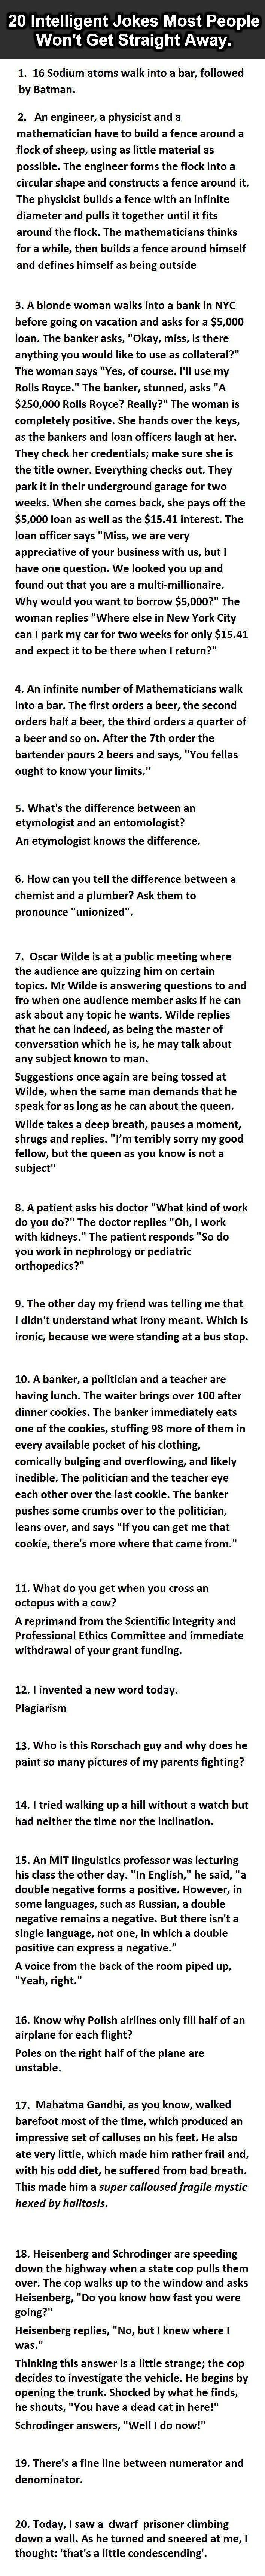 20 Intelligent Jokes Most People Won't Get Straight Away. #16 Is Gold.